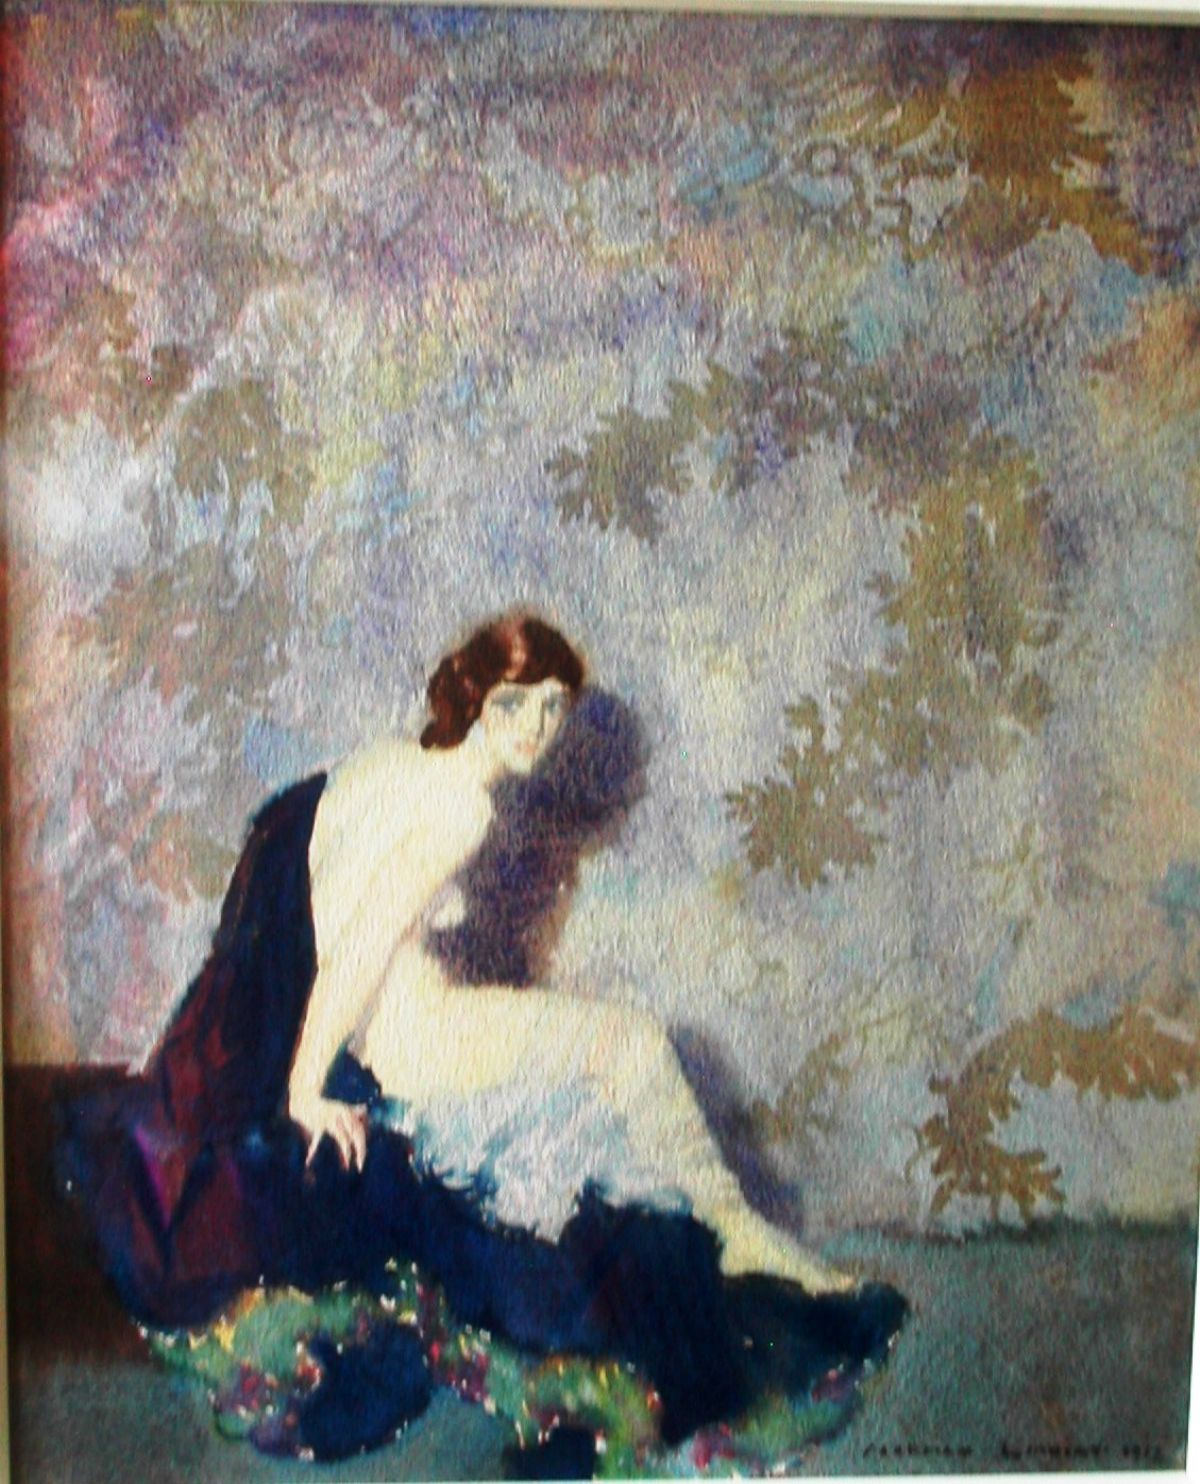 Nude Study artwork by Norman Lindsay - art listed for sale on Artplode